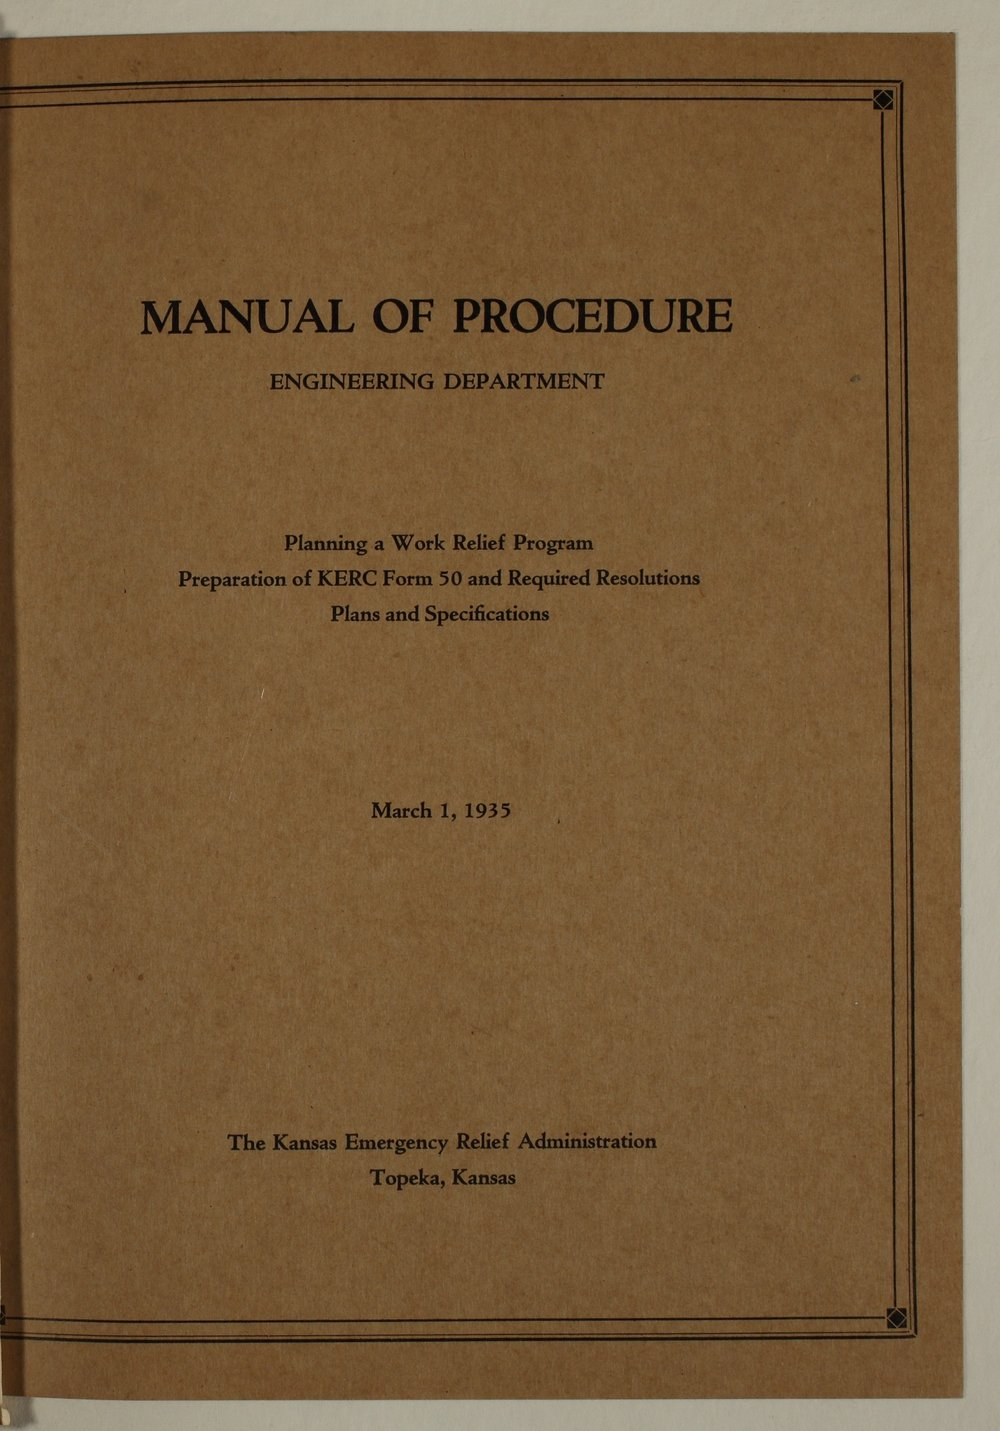 Manual of procedure, engineering department - Front Cover